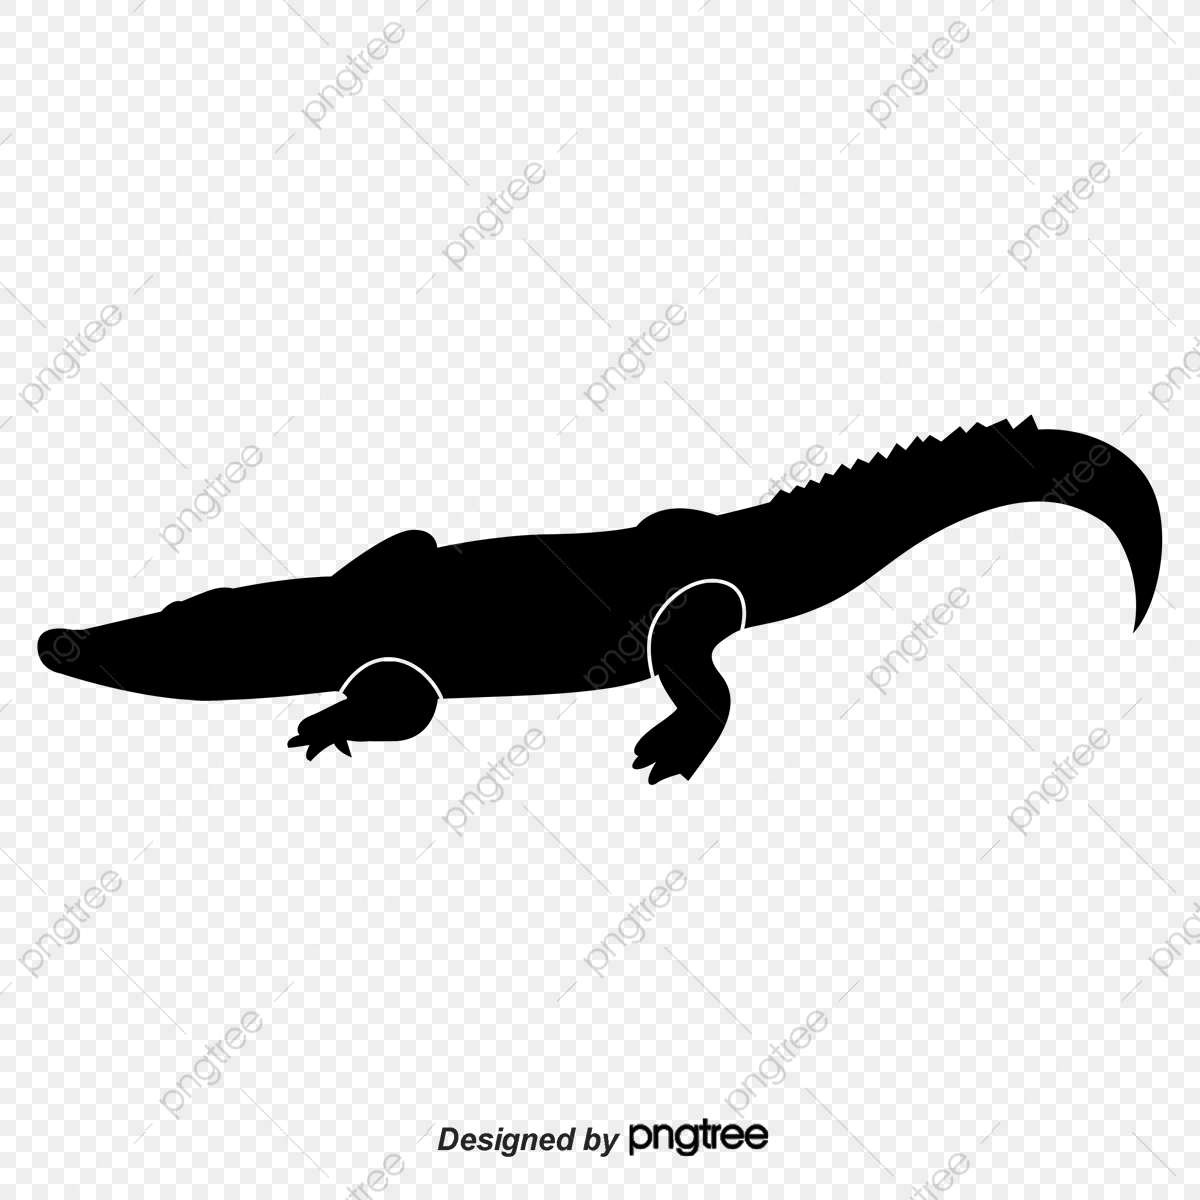 Crocodile Silhouette, Crocodile, Sketch, Crocodile Vector PNG.